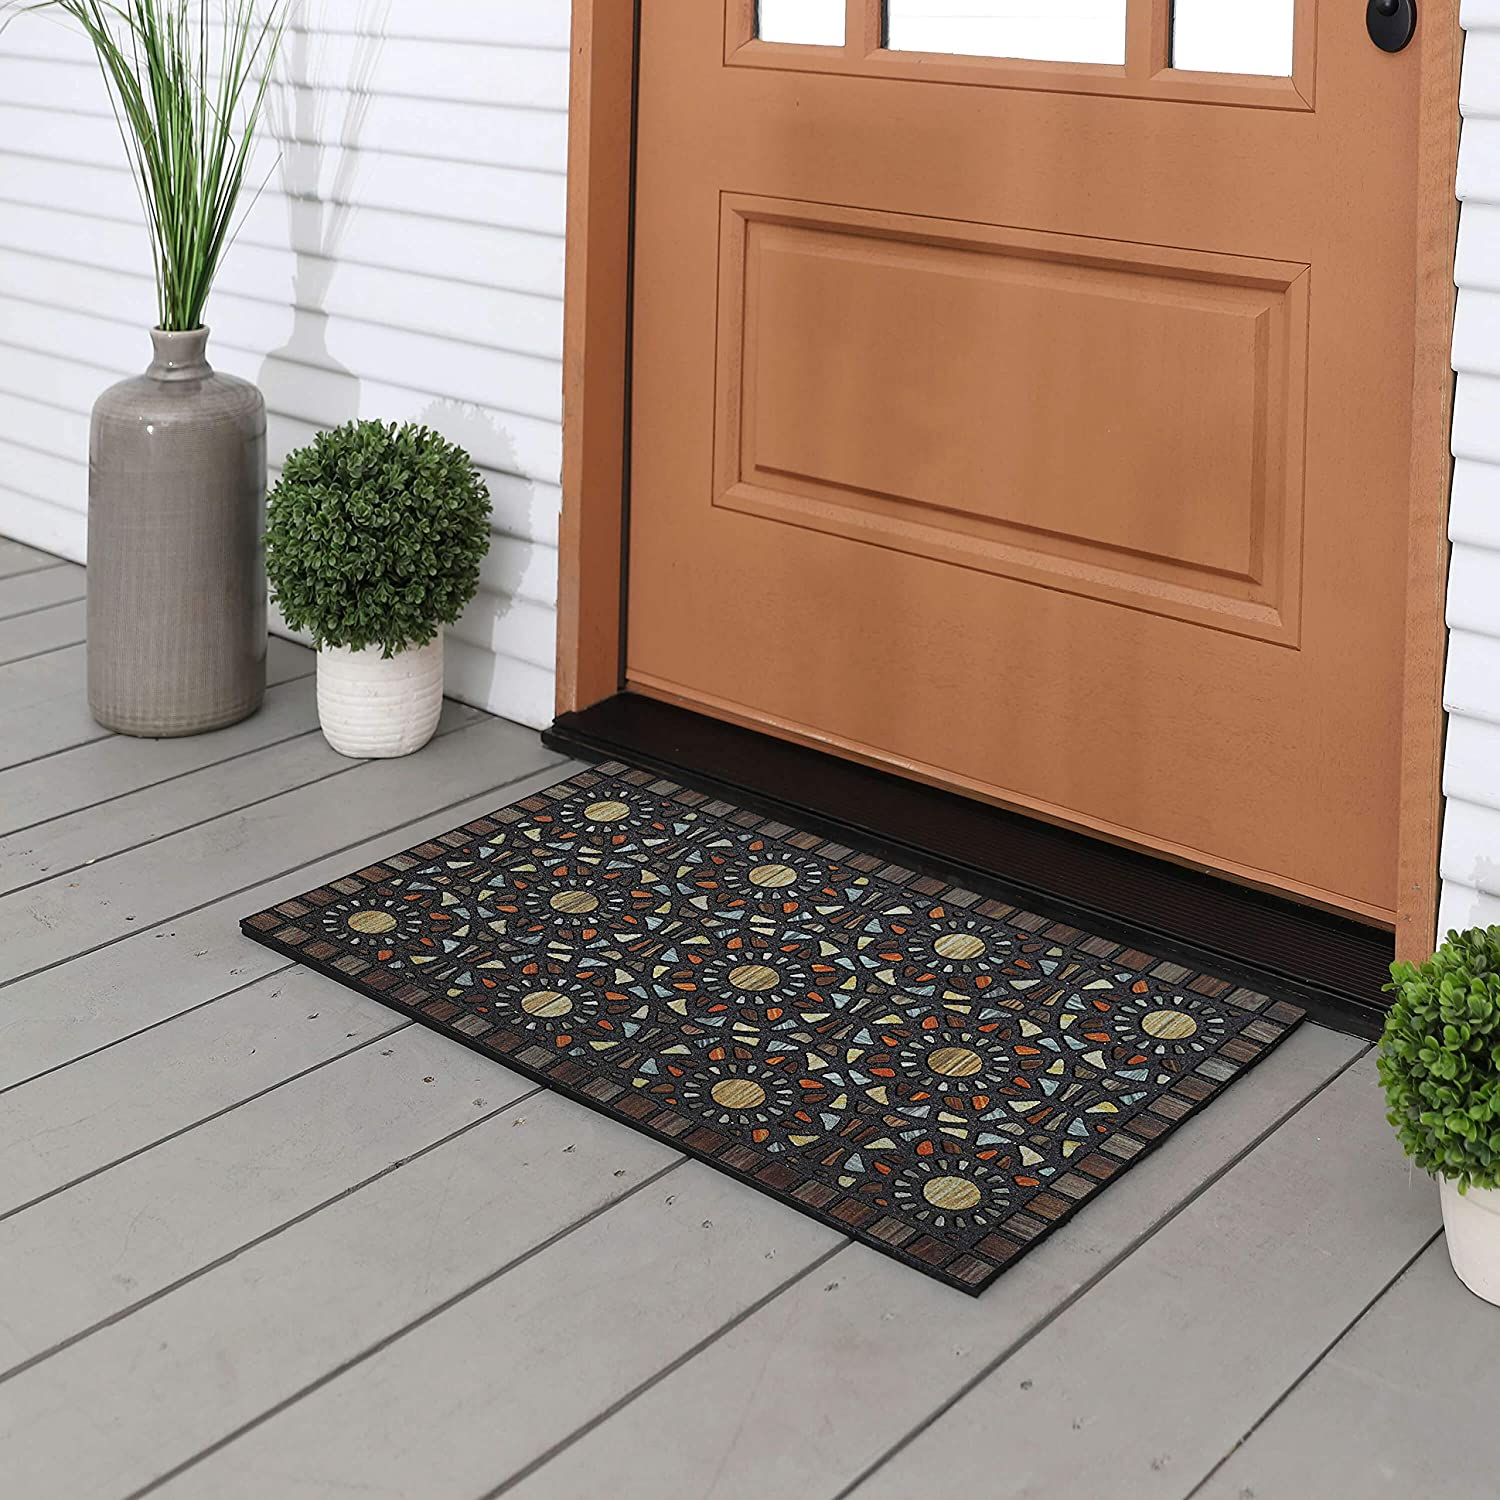 Mohawk Home 4925 18457 018030 EC Entranced Mosaic Grain Doormat, Brown